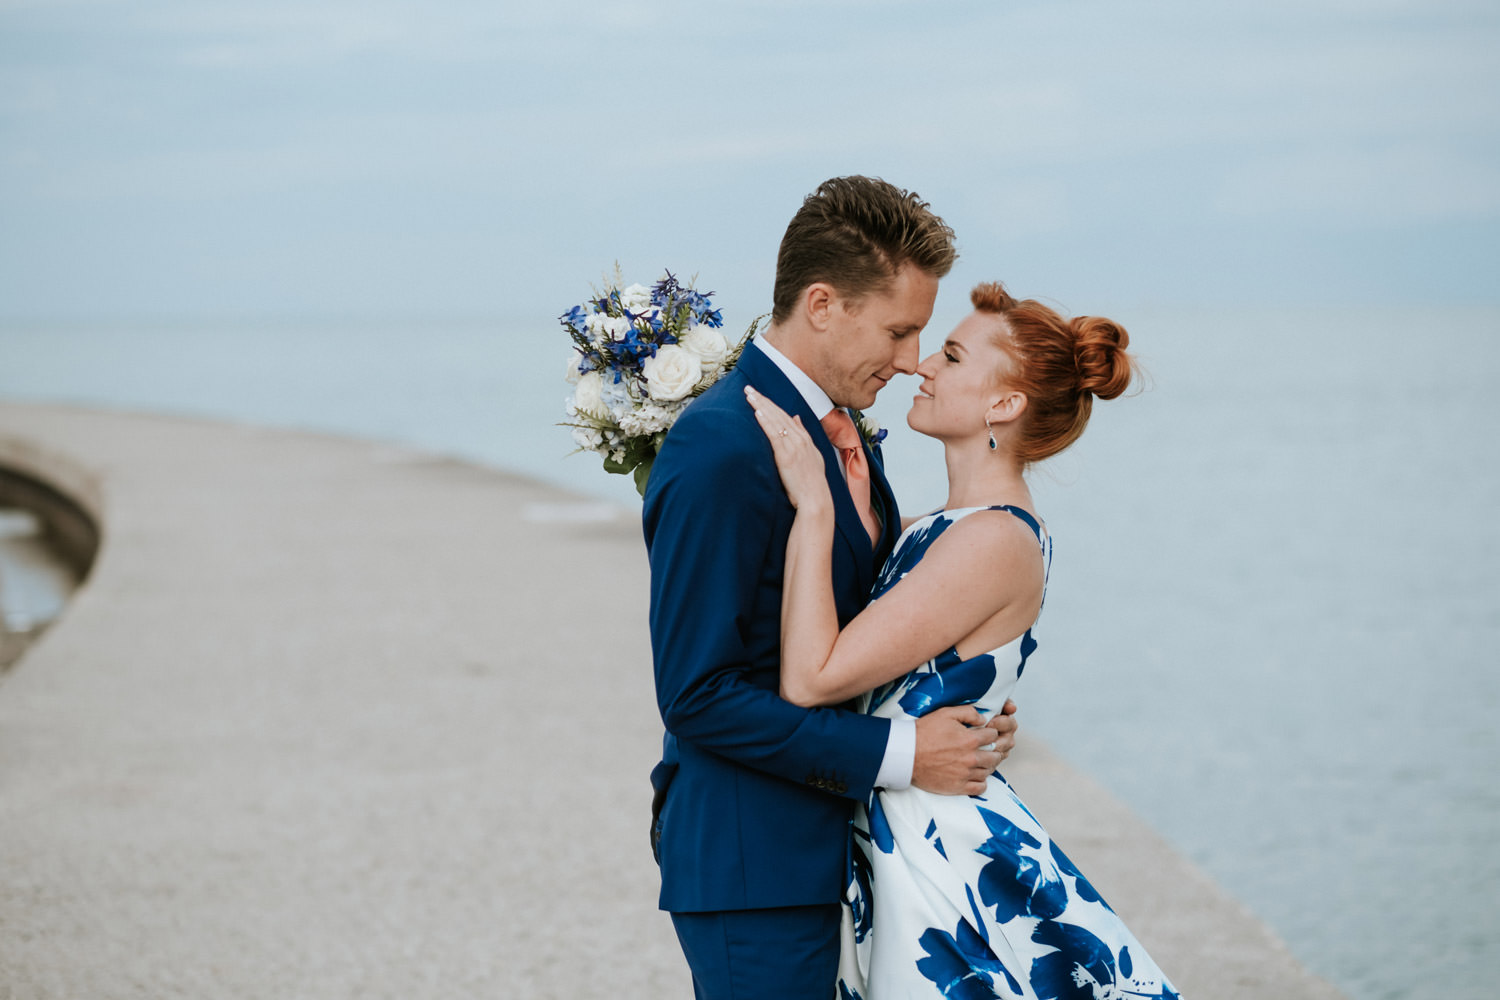 intimate moment between bride and groom captured byt the lake. The photo taken during their Chicago elopement